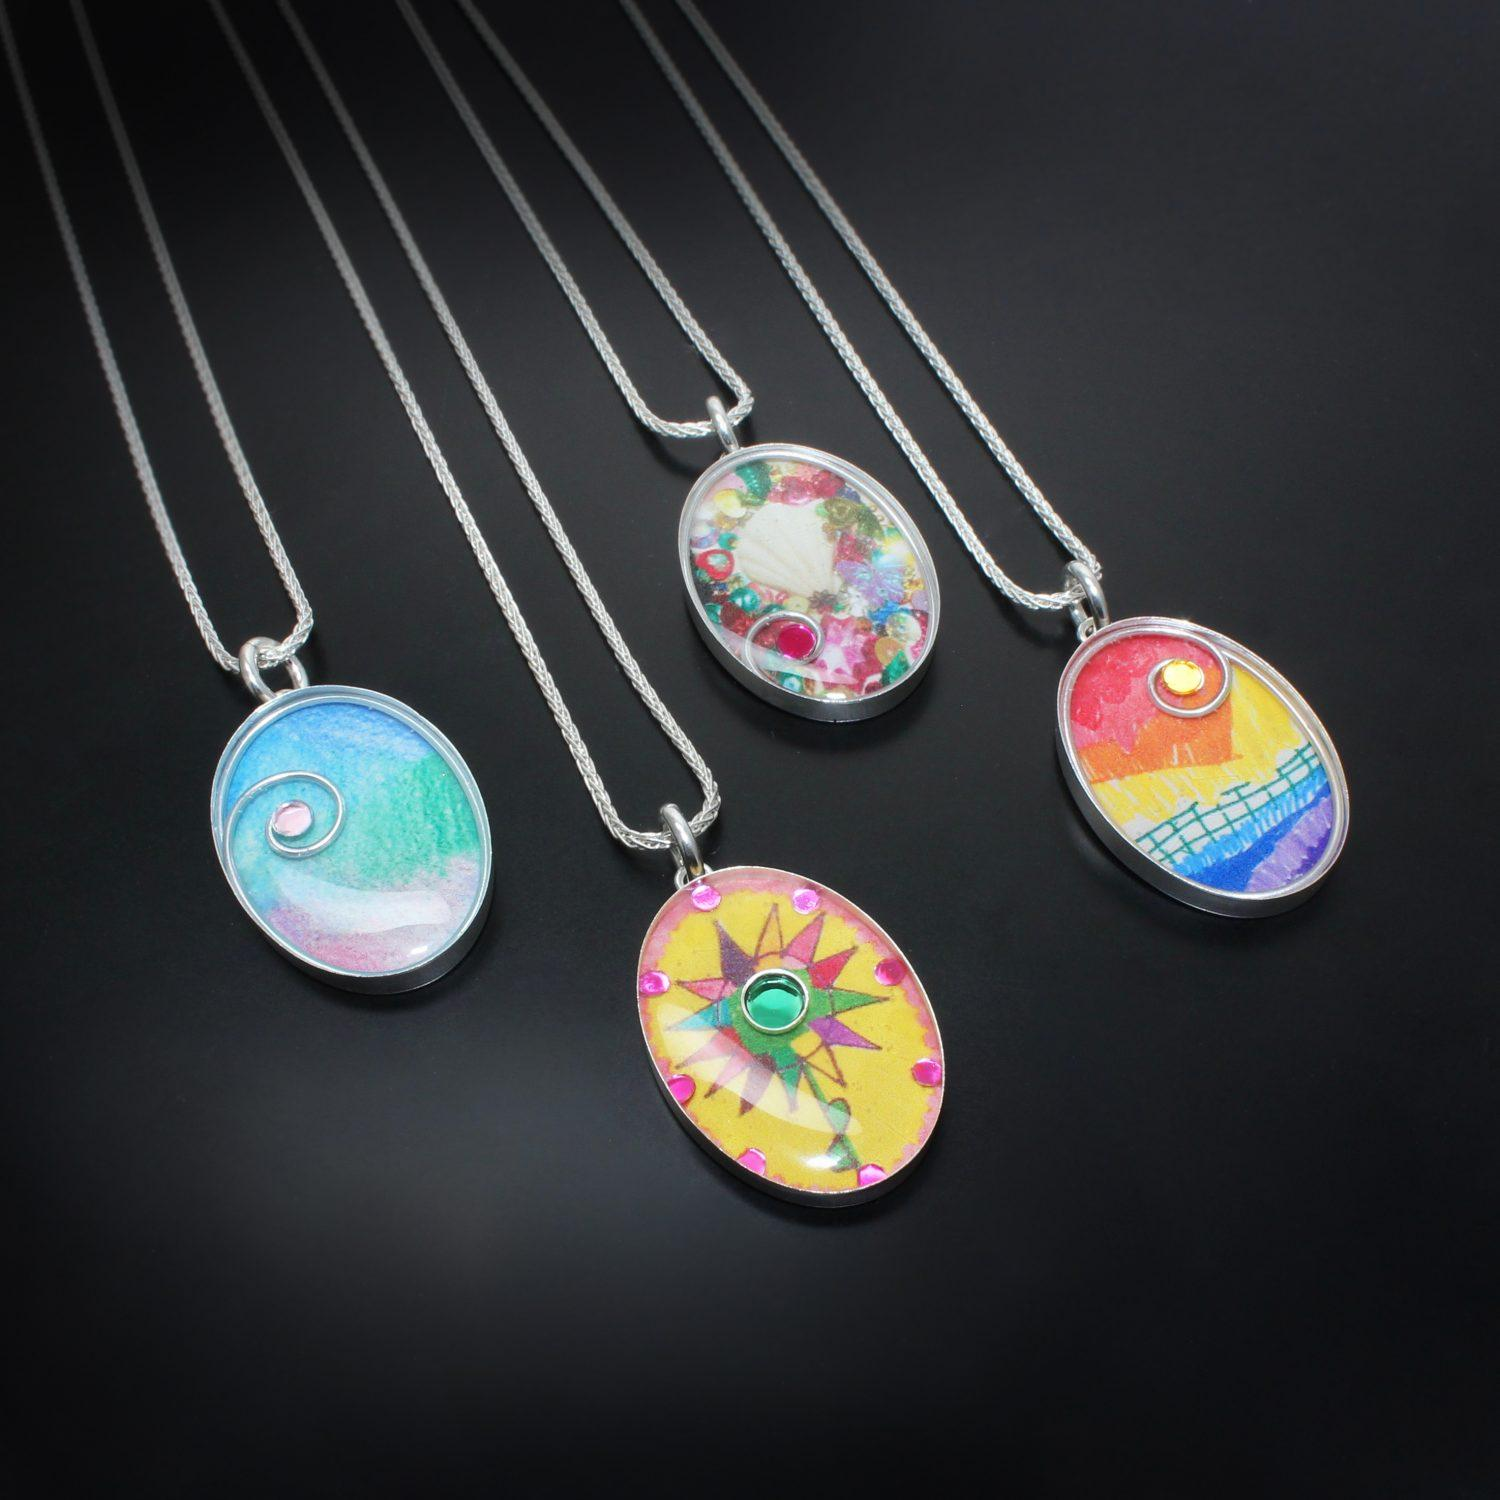 JEWELRY DESIGN CONTEST WINNERS ANNOUNCED Hannibal Arts Council